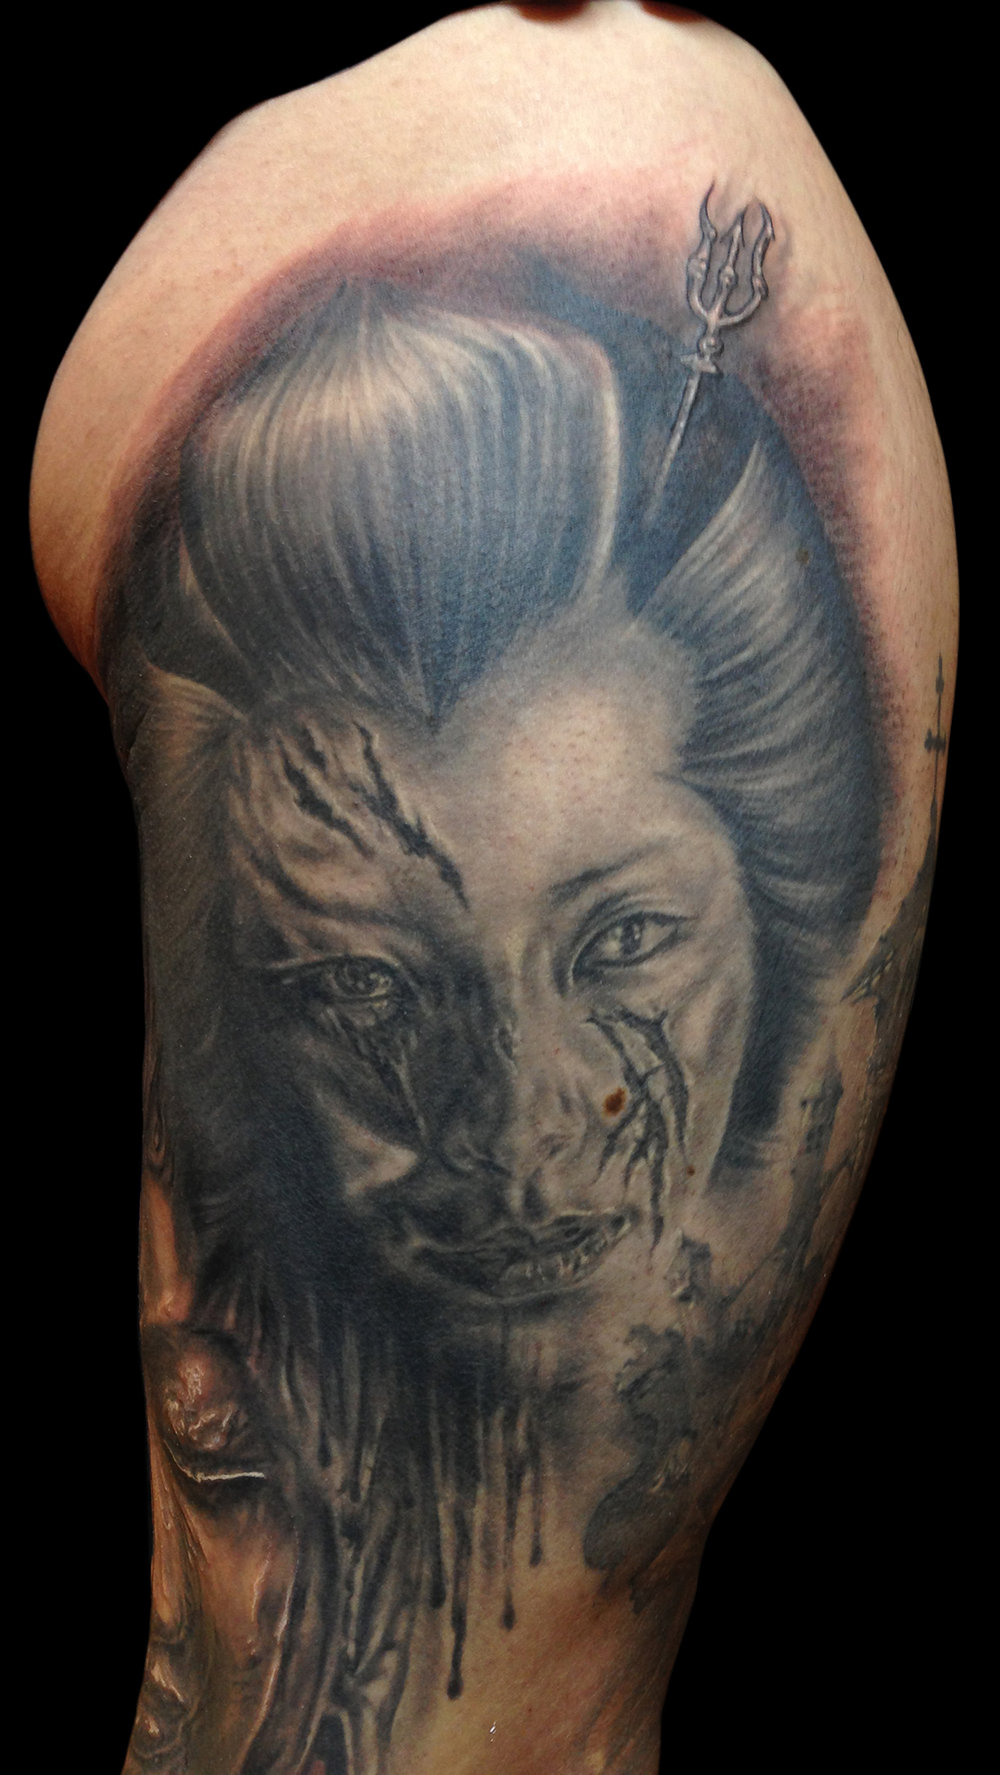 Back and Grey Slashed Geisha Horror Portrait Tattoo, (face is healed in this photo) Zwickau Tattoo Expo, Germany